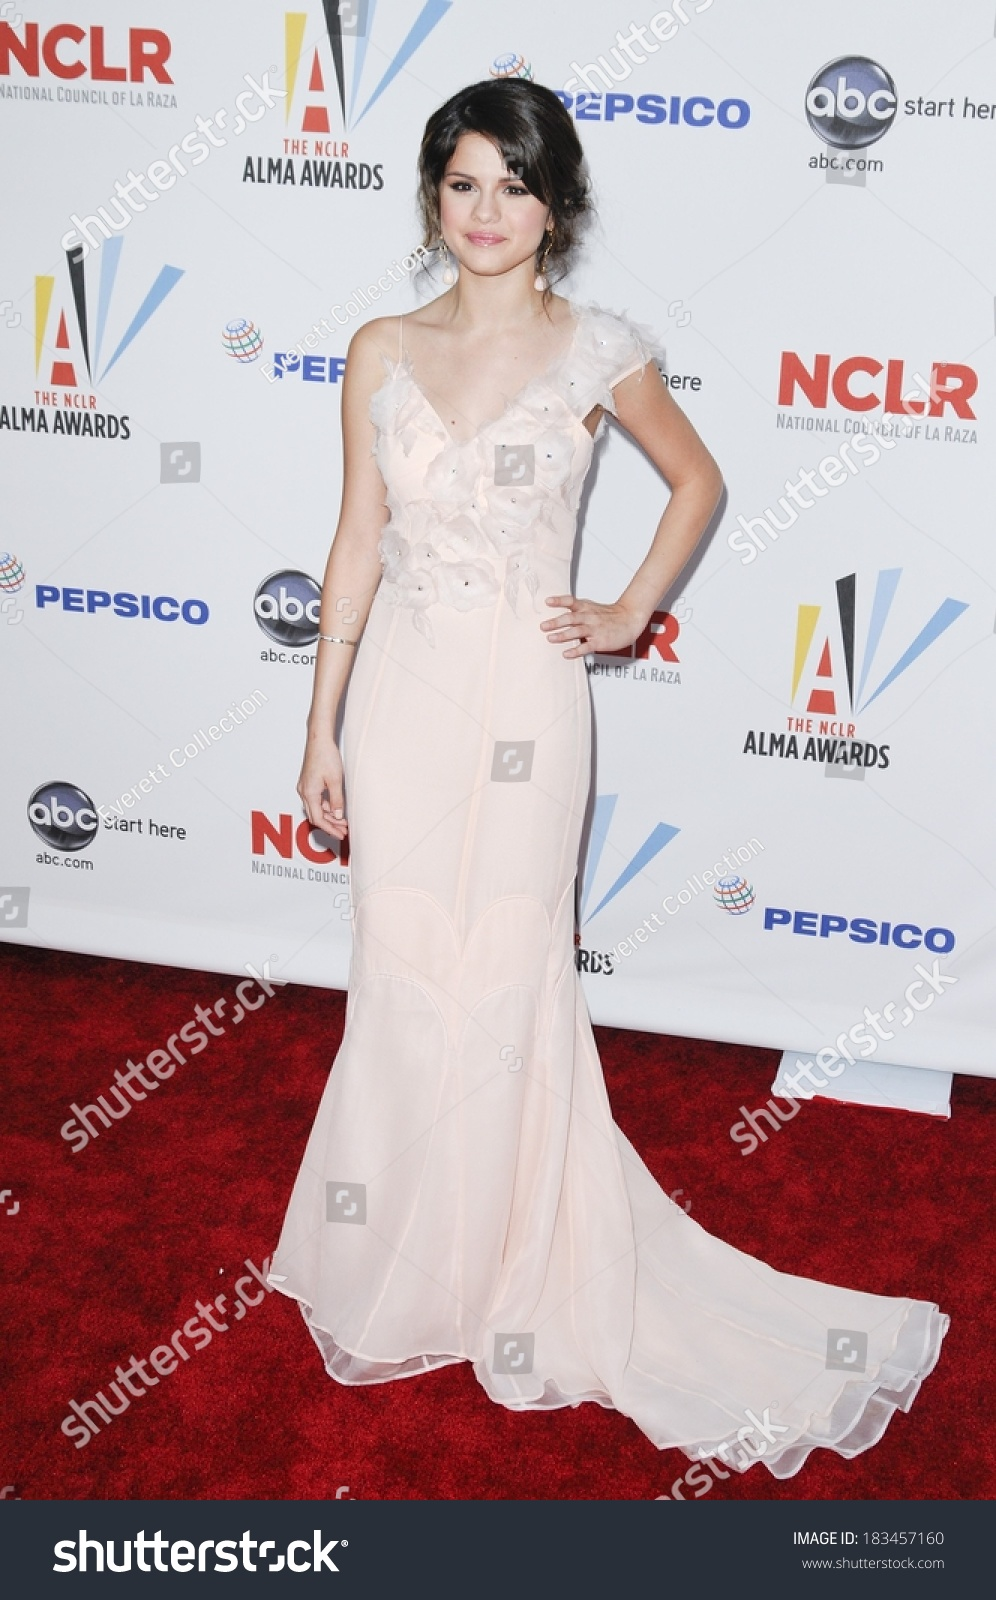 Selena Gomez Wearing Tracy Reese Gown Stock Photo (Edit Now ...